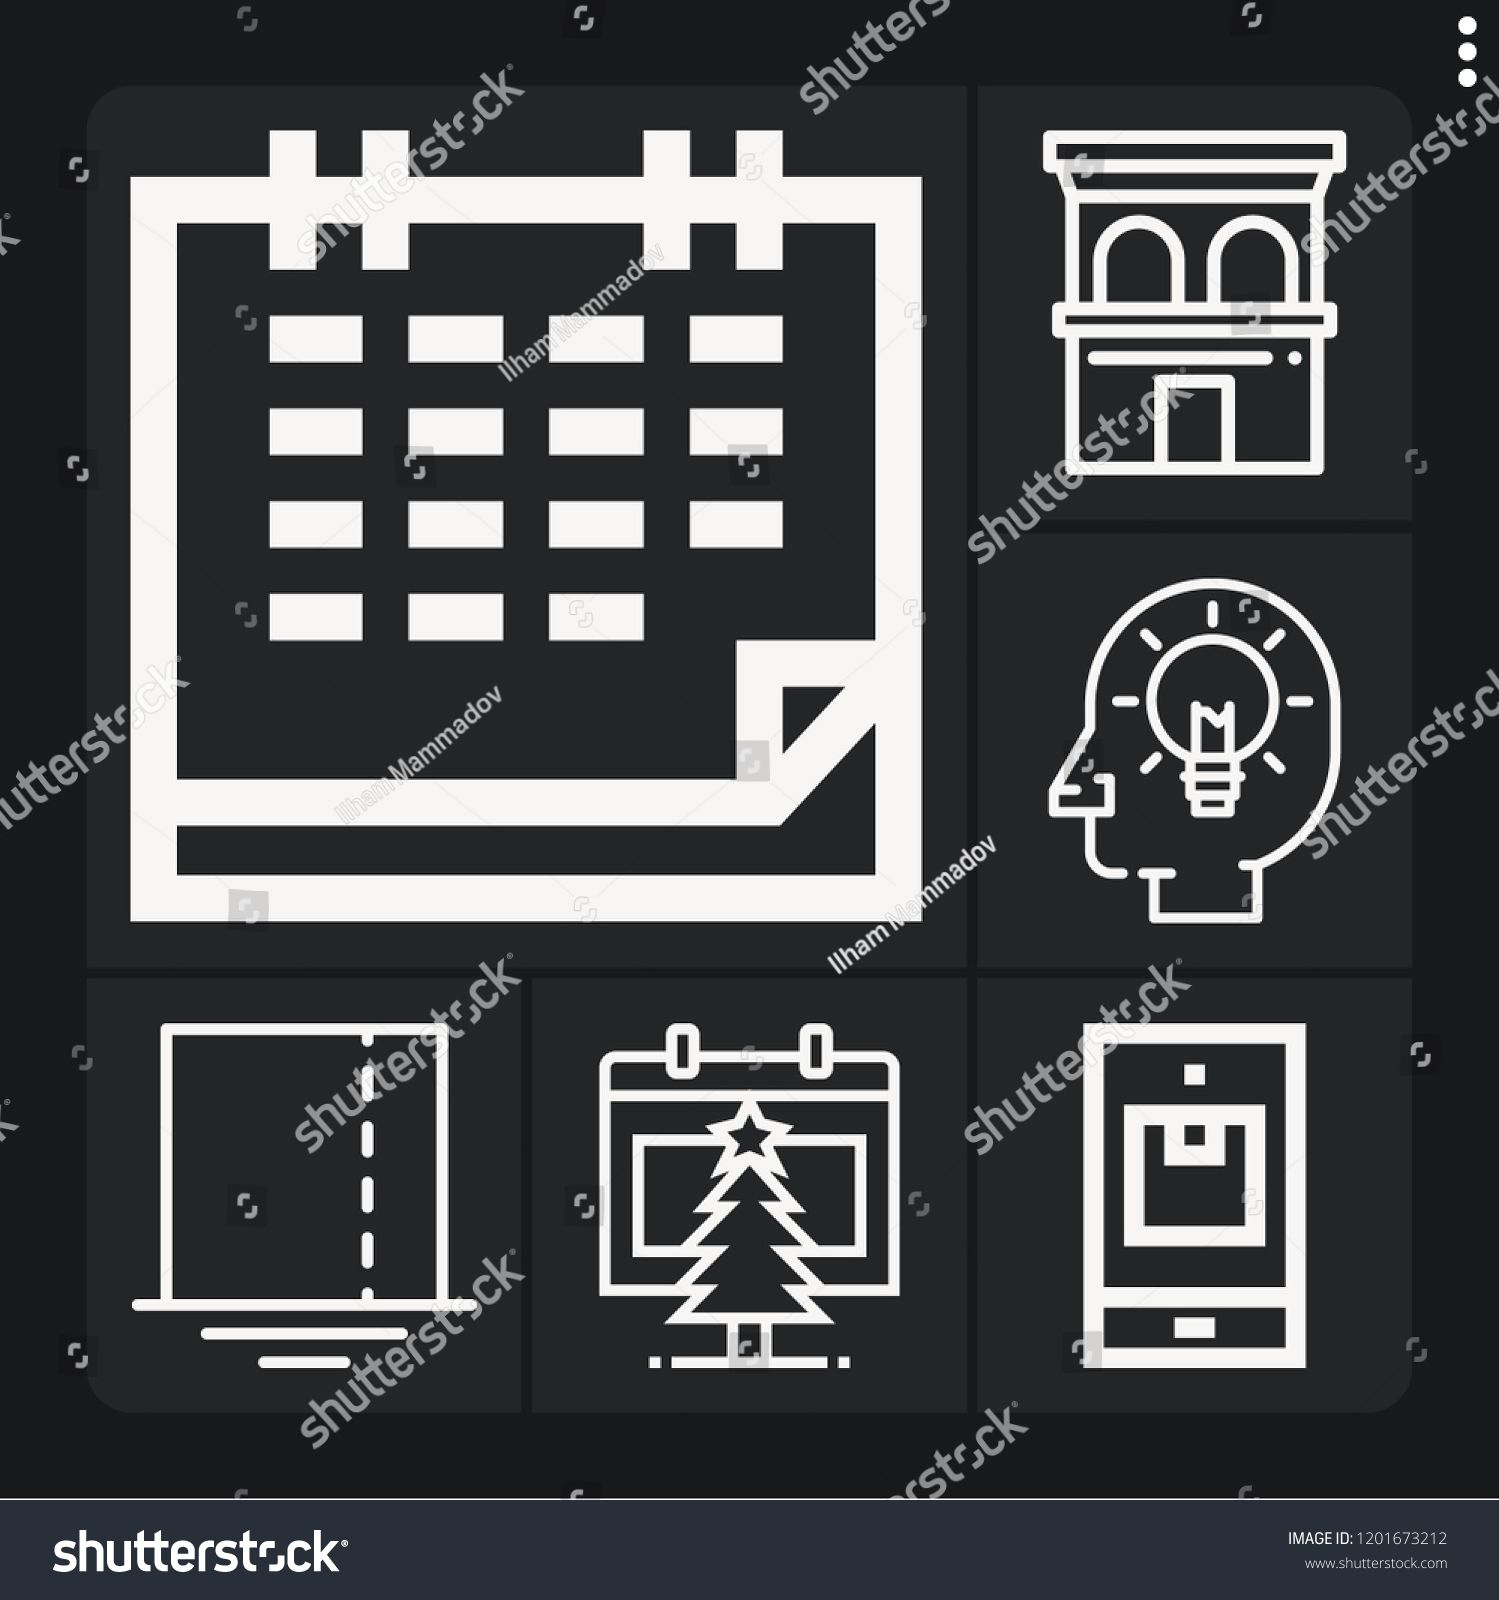 Set of 6 business outline icons such as calendar, square